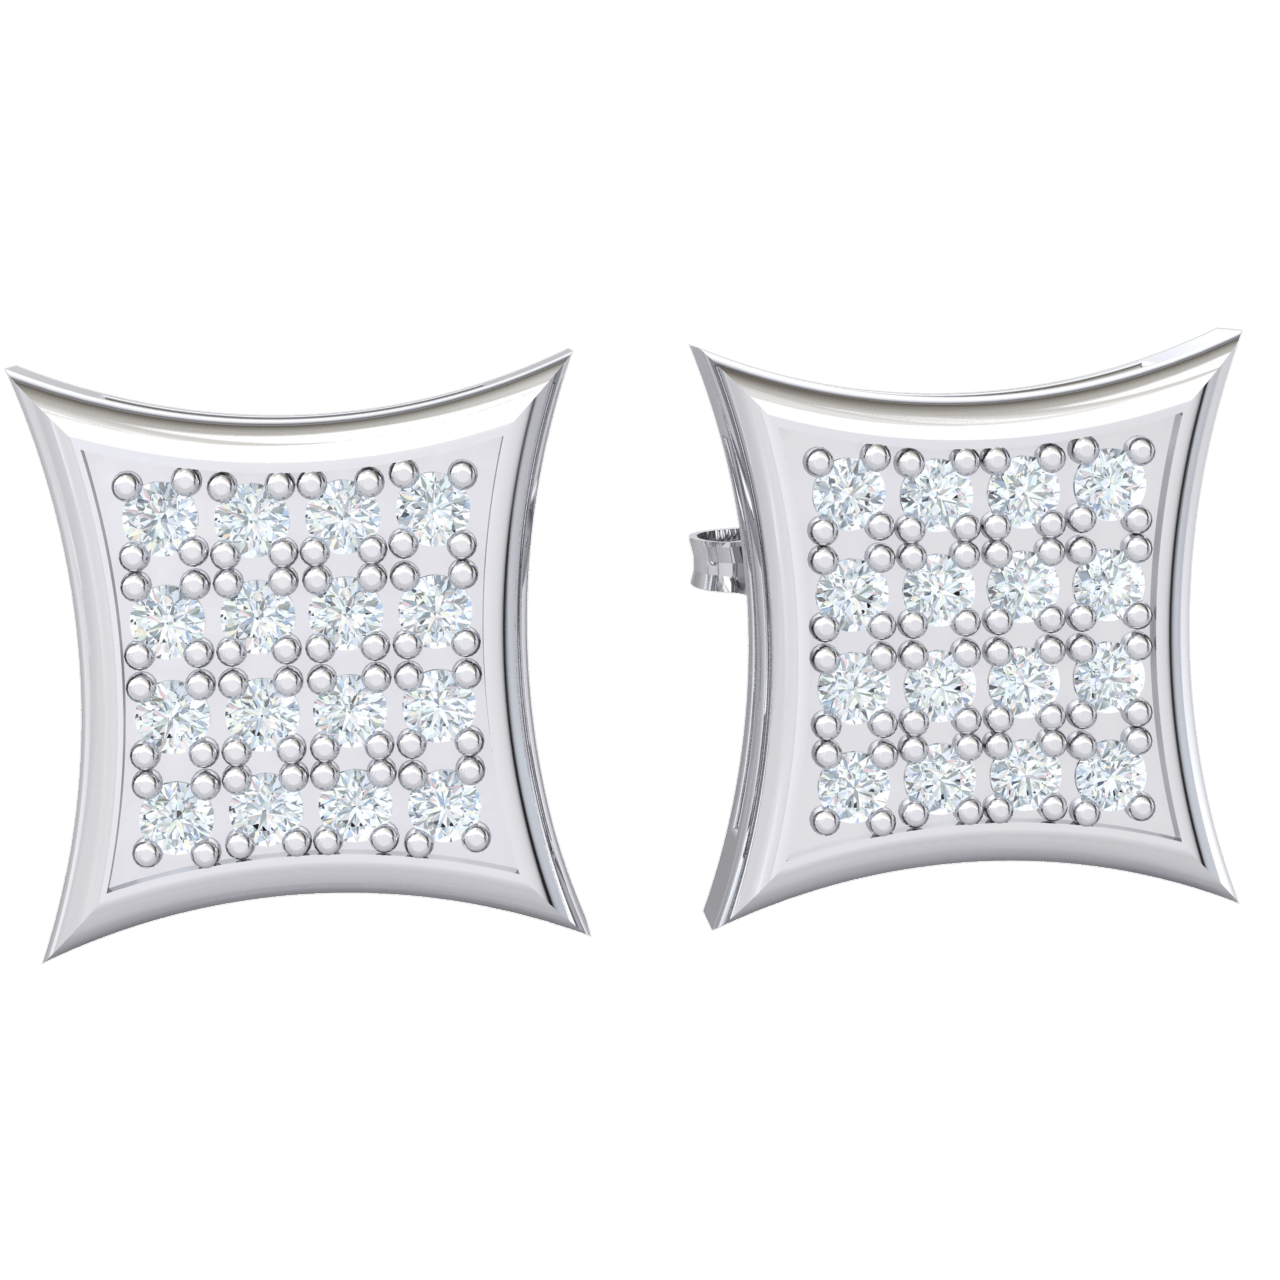 Magnificently Crafted Square Shaped Real Stud Earrings With Rows Of Beautiful White Diamonds 0.16 Ct GH I1-I2 and 10 kt Gold